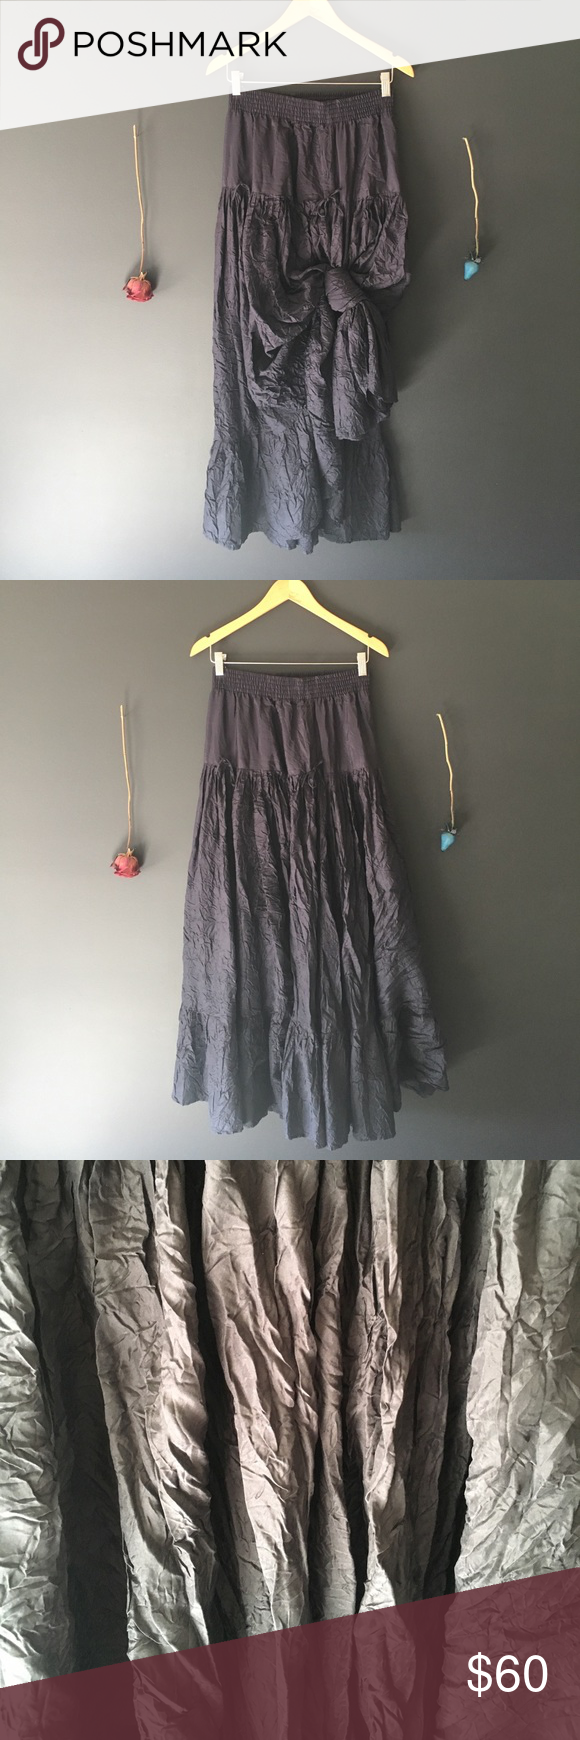 CALYPSO ST BARTH Classic Parachute Skirt CALYPSO ST BARTH Classic Parachute Skirt in navy blue. 100% silk. Very versatile, can tie up in multiple ways! Fits true to size. SIZE XS. Calypso St. Barth Skirts Maxi